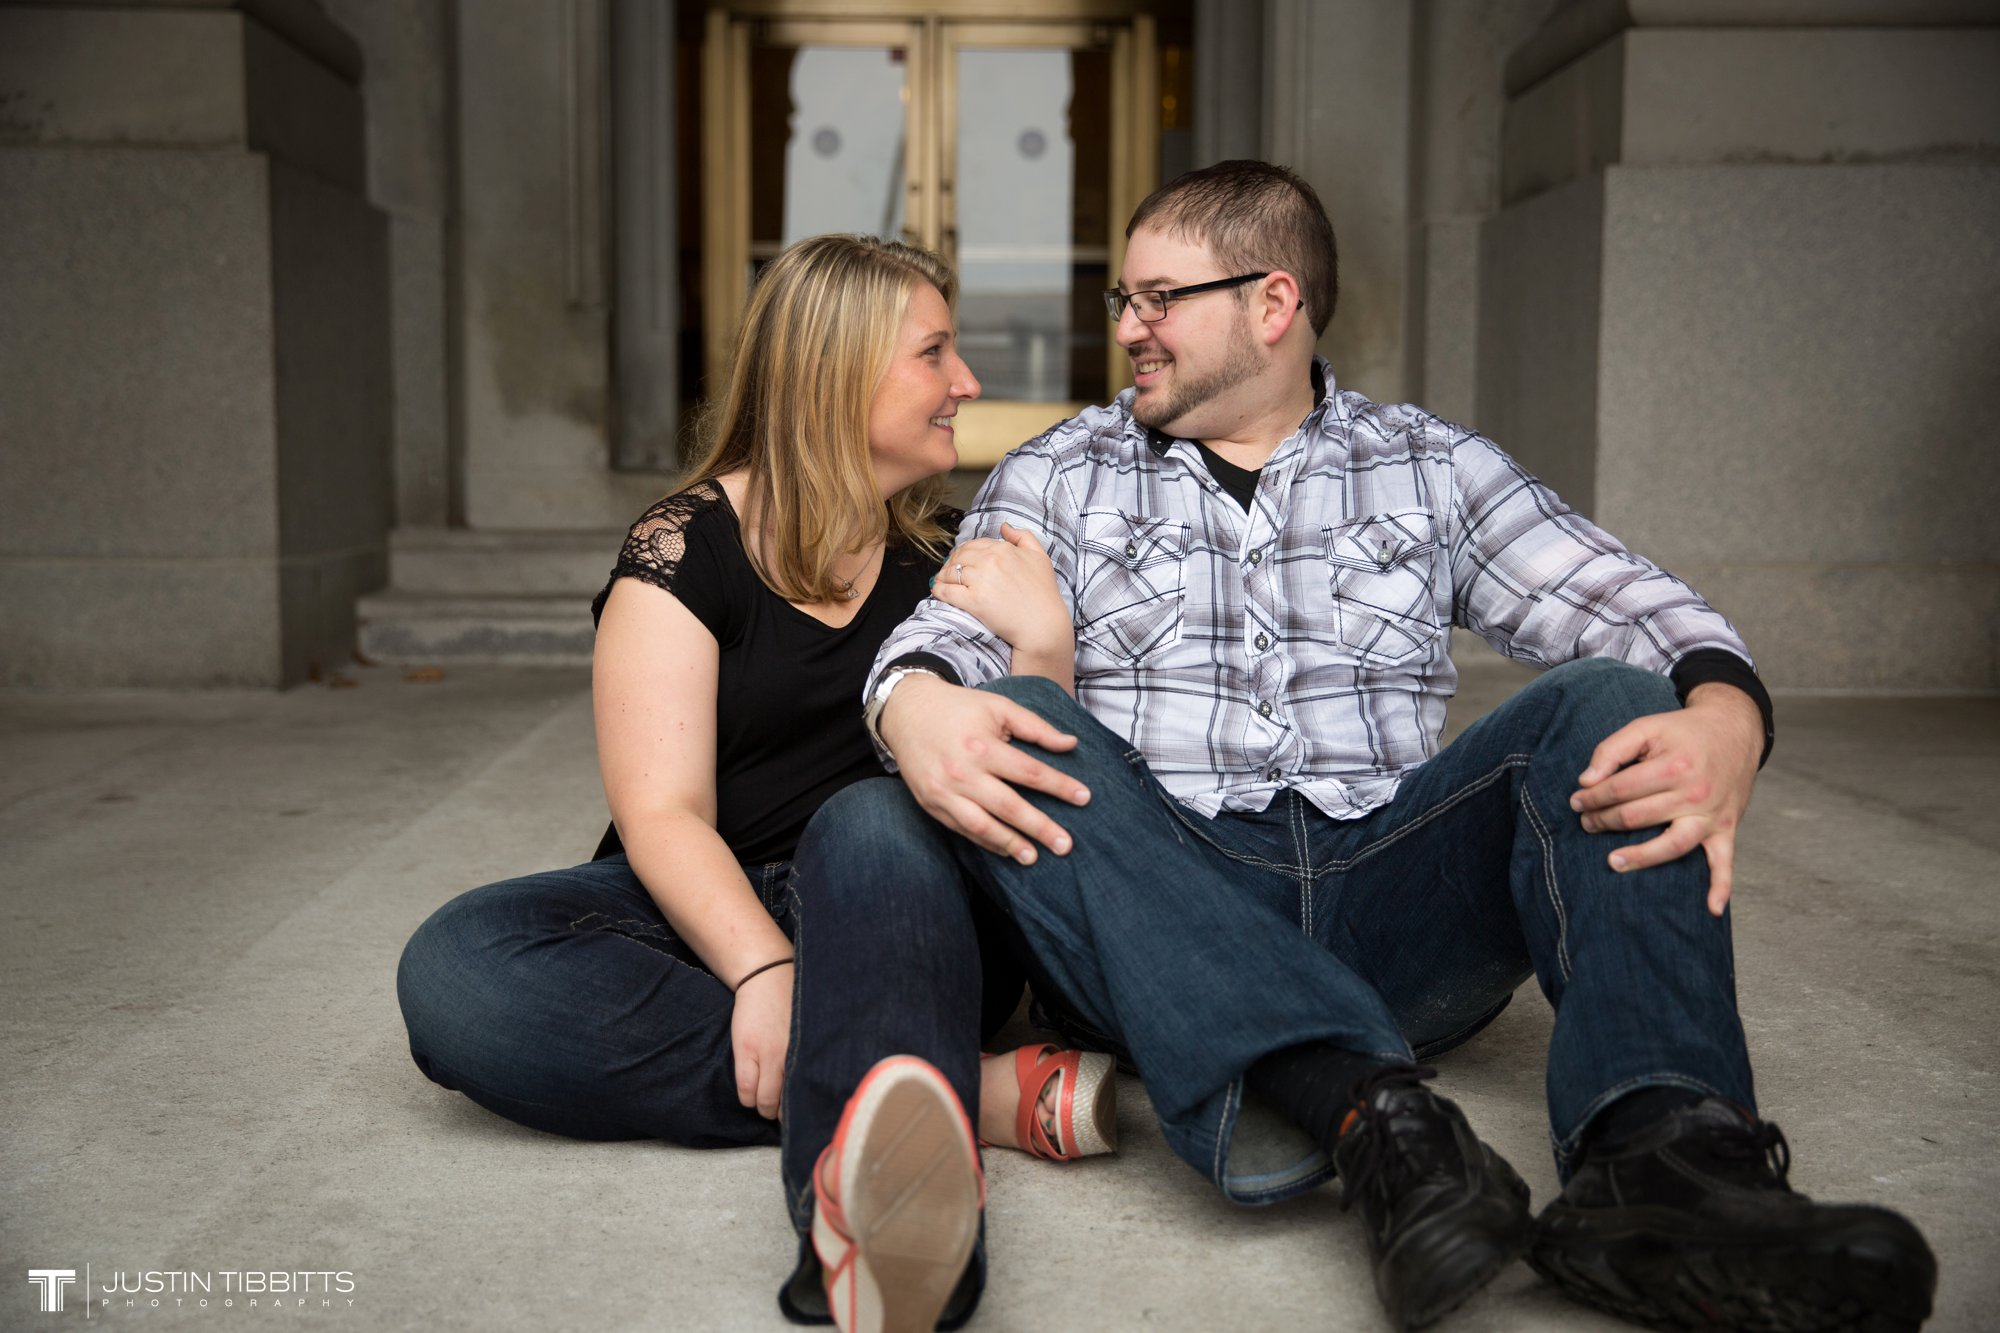 Justin Tibbitts Photography Jessica and Steve H E-shoot-4